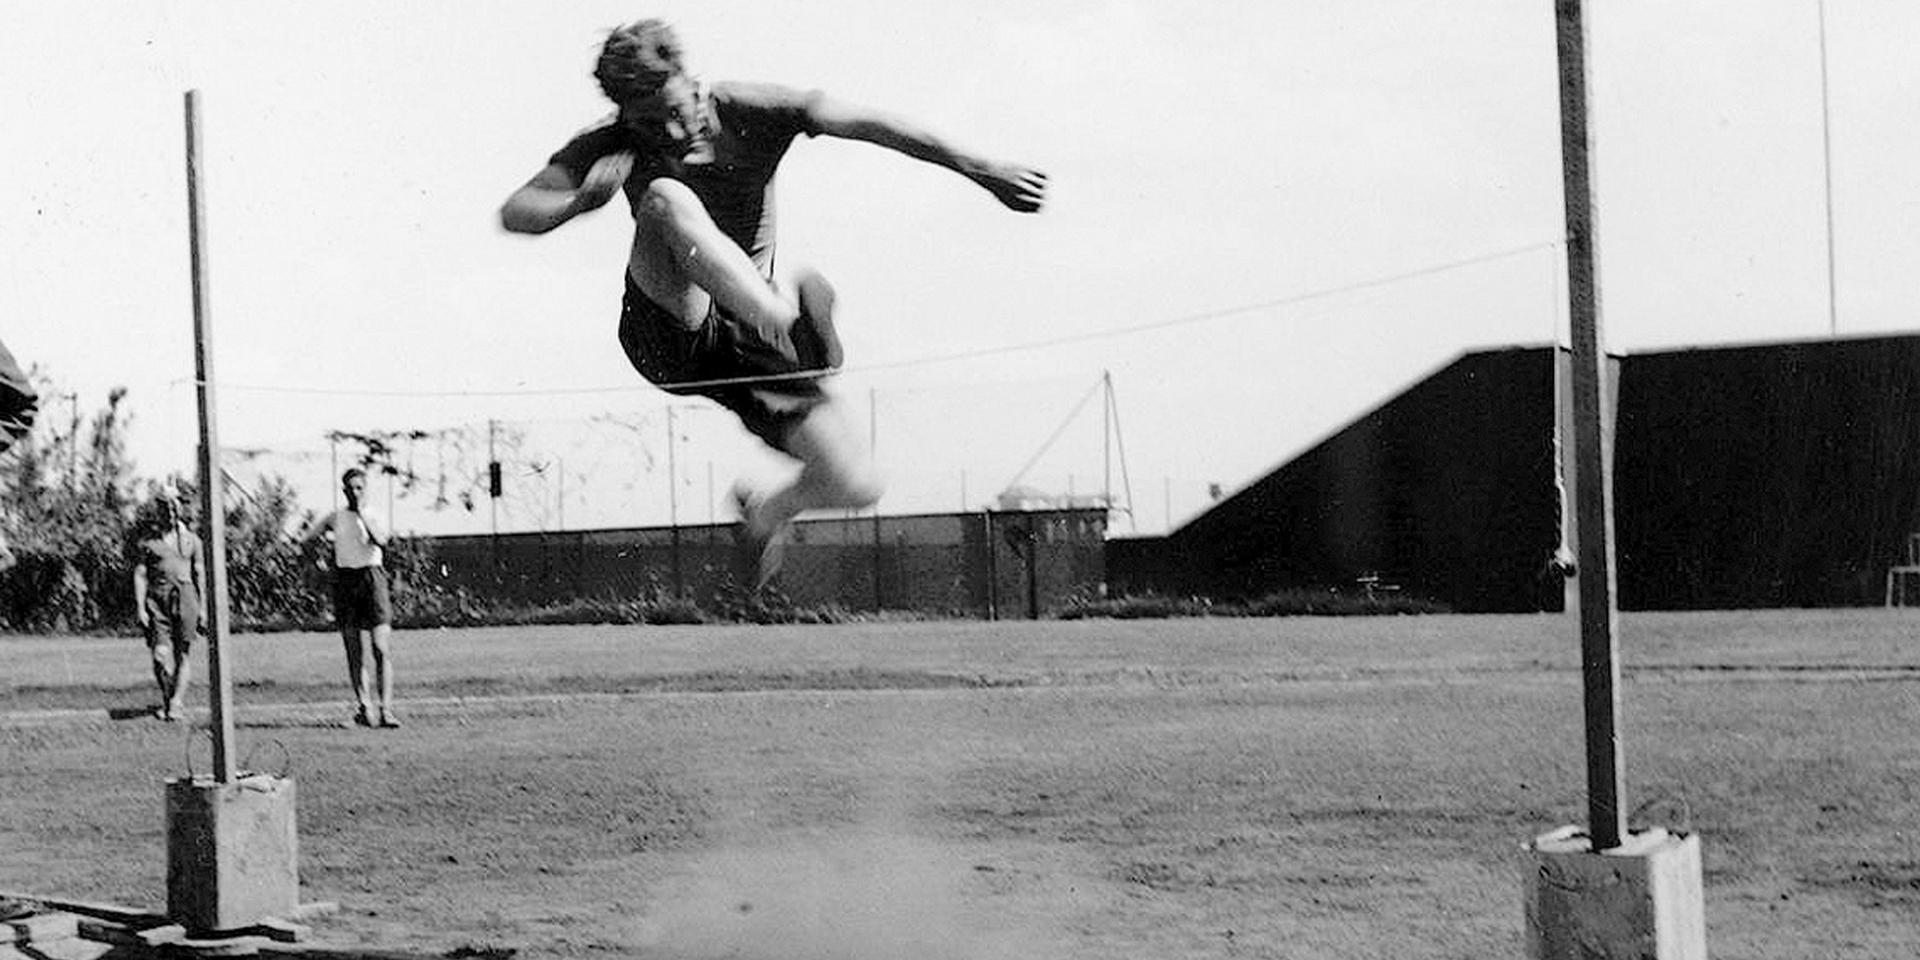 High jumping in the Western Desert, 1943